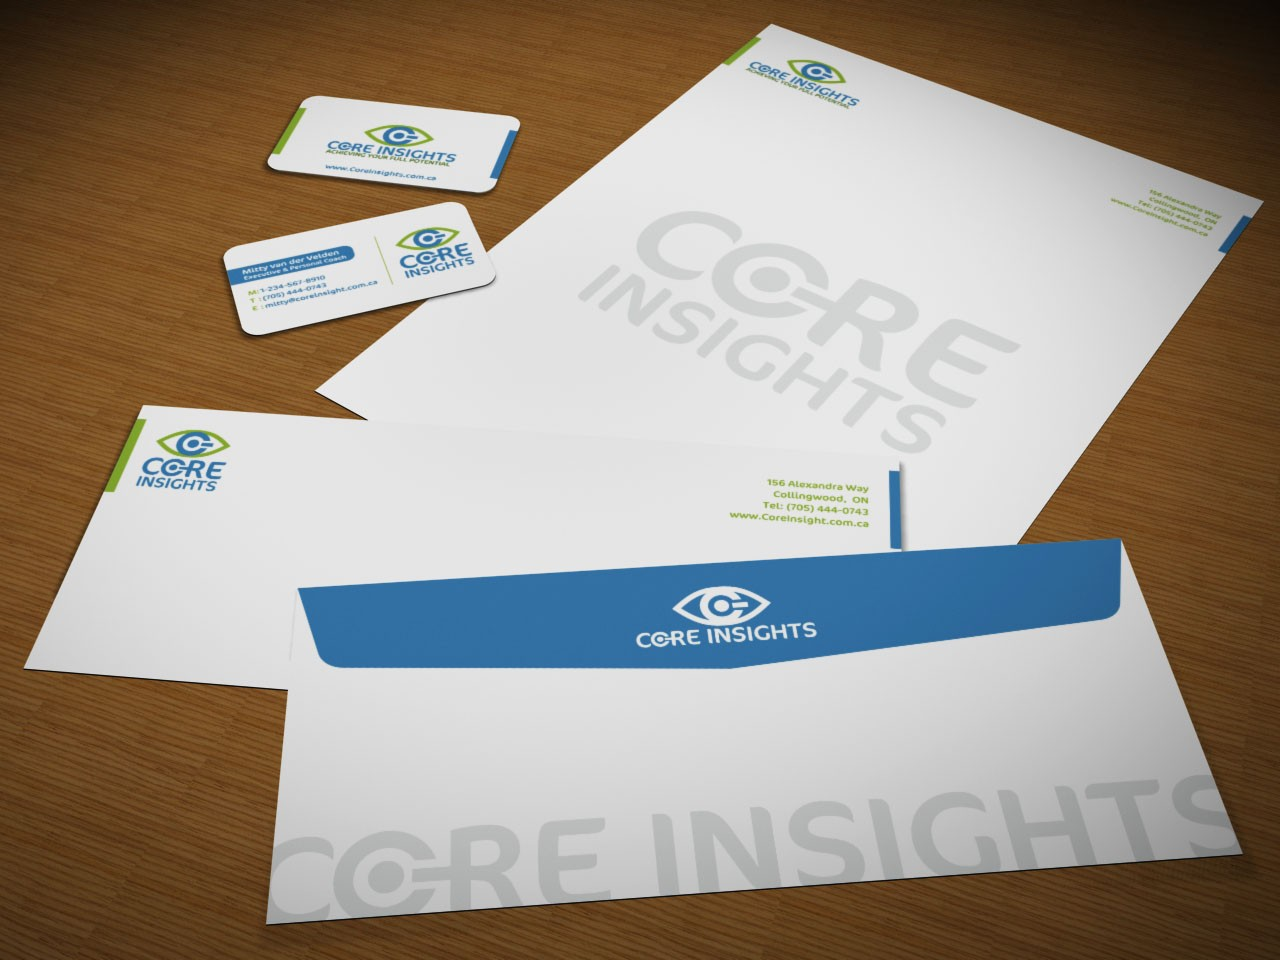 Core Insights needs a new stationery